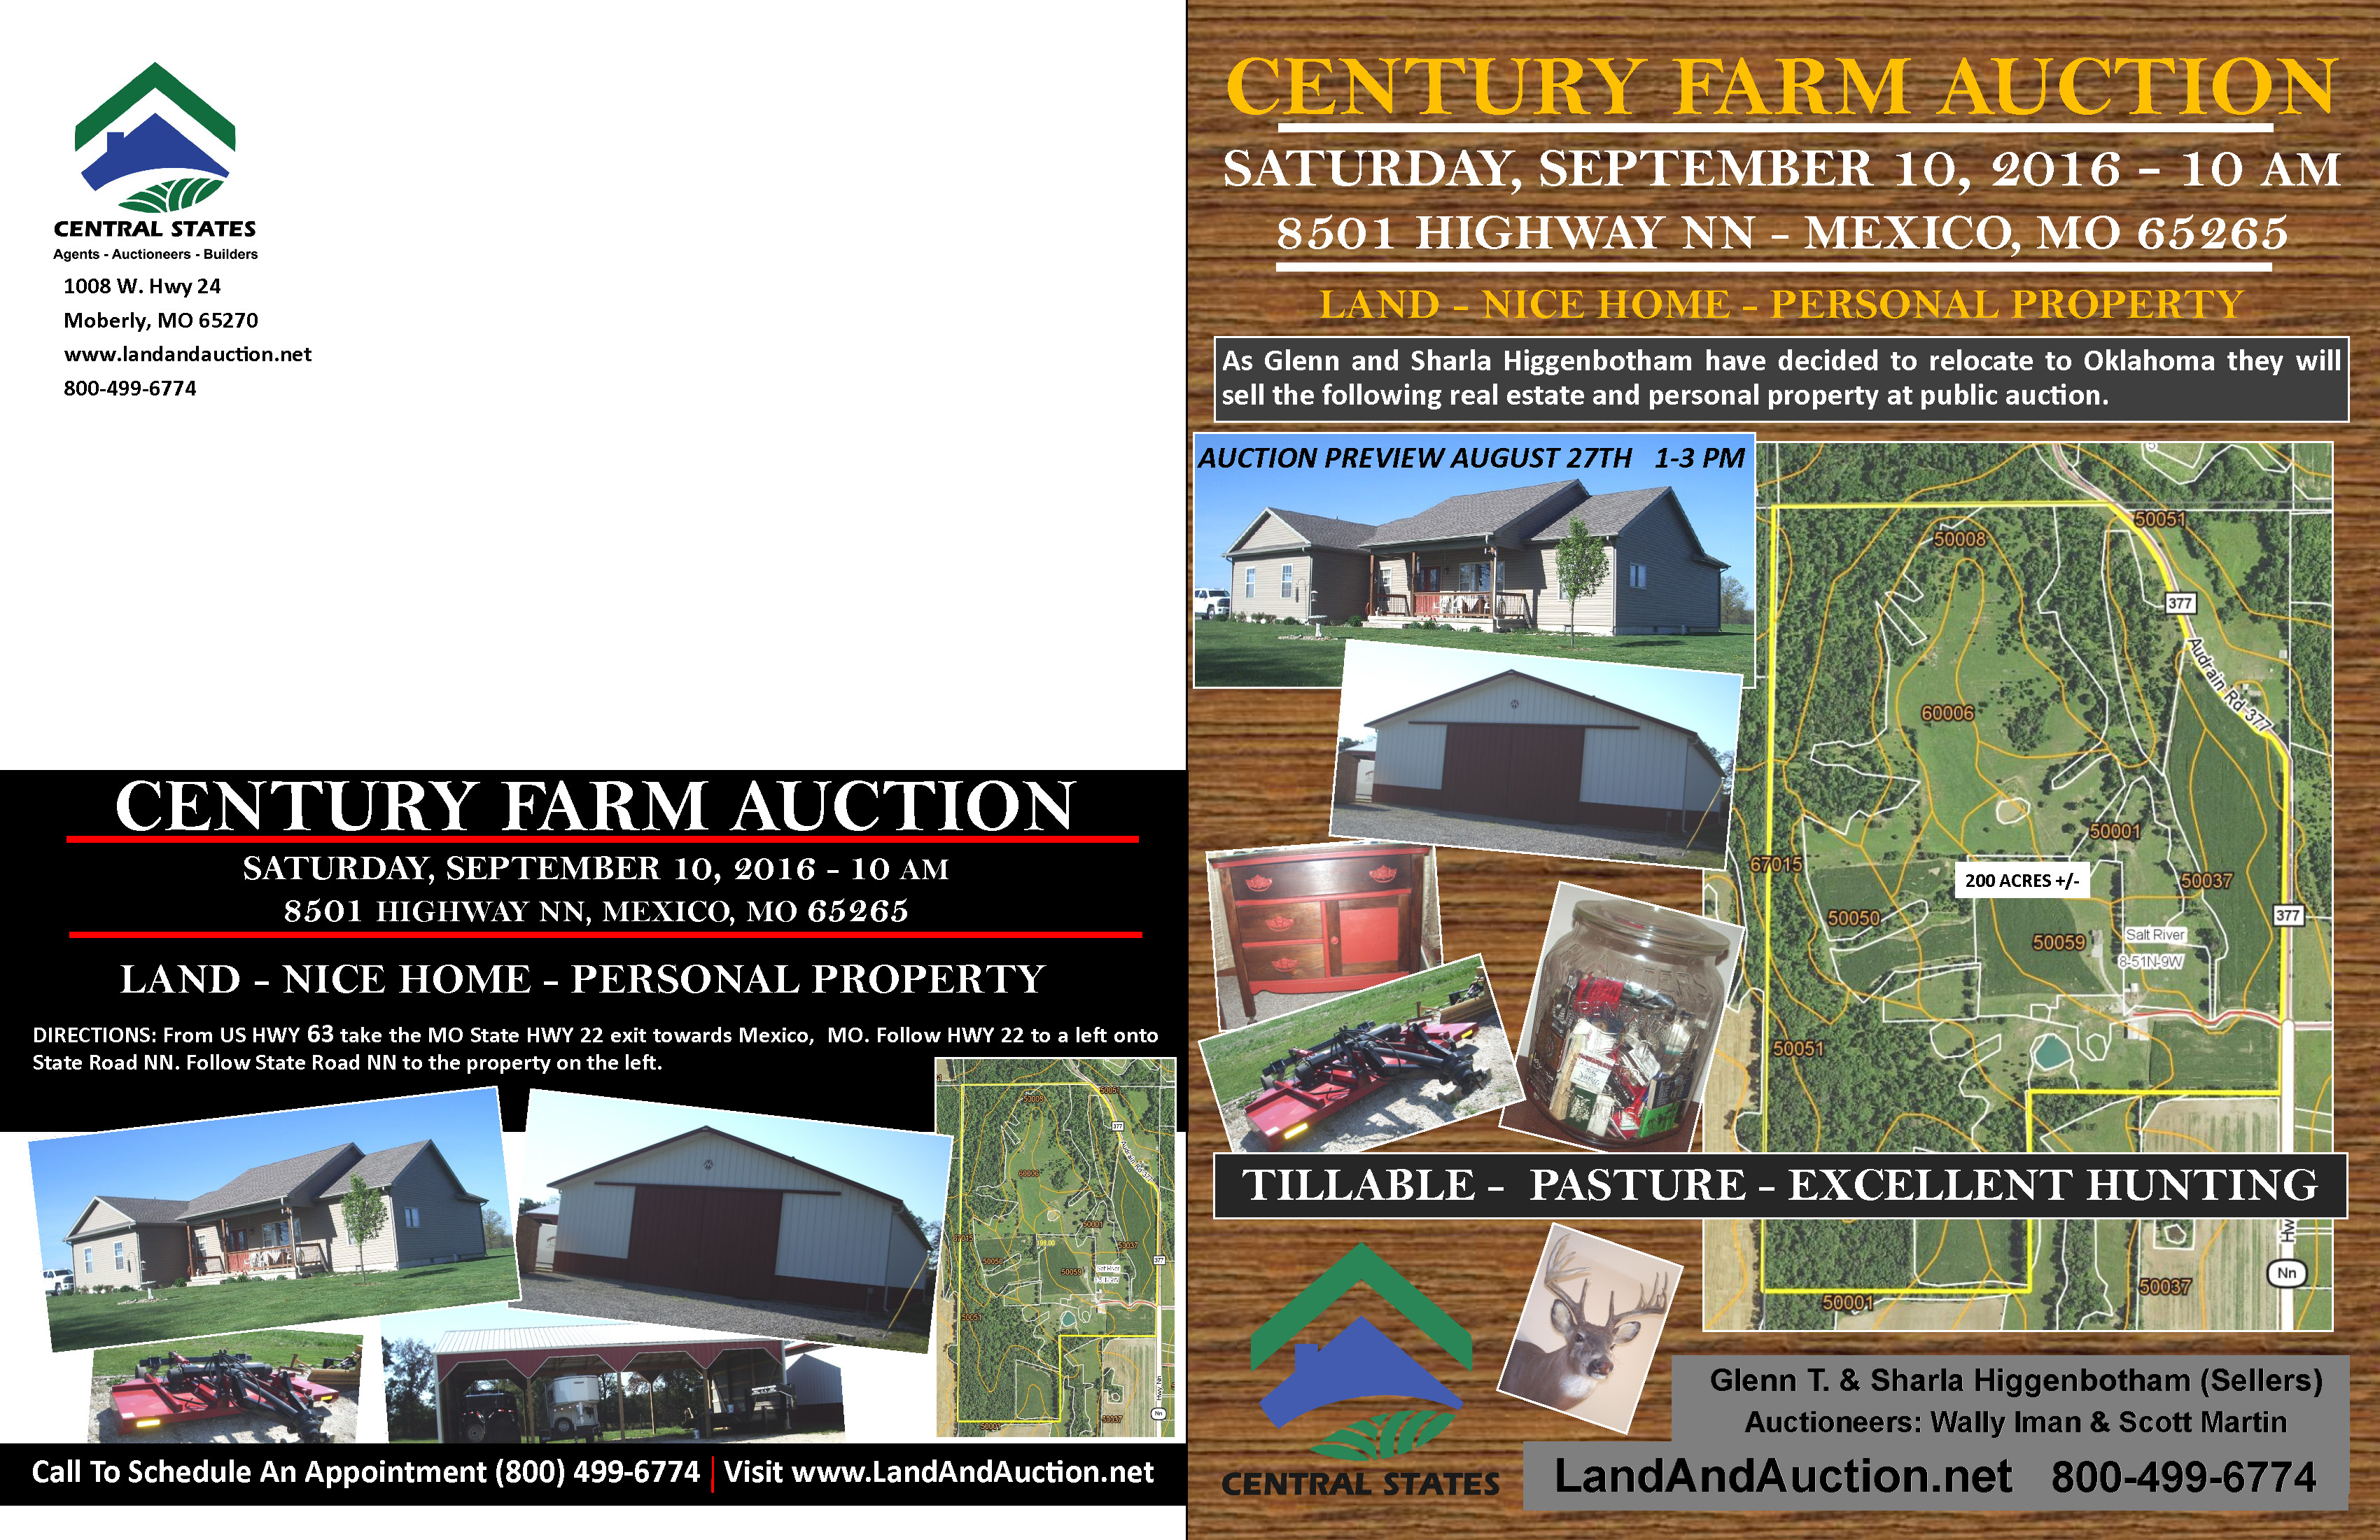 CENTURY FARM AUCTION – REAL ESTATE & PERSONAL PROPERTY